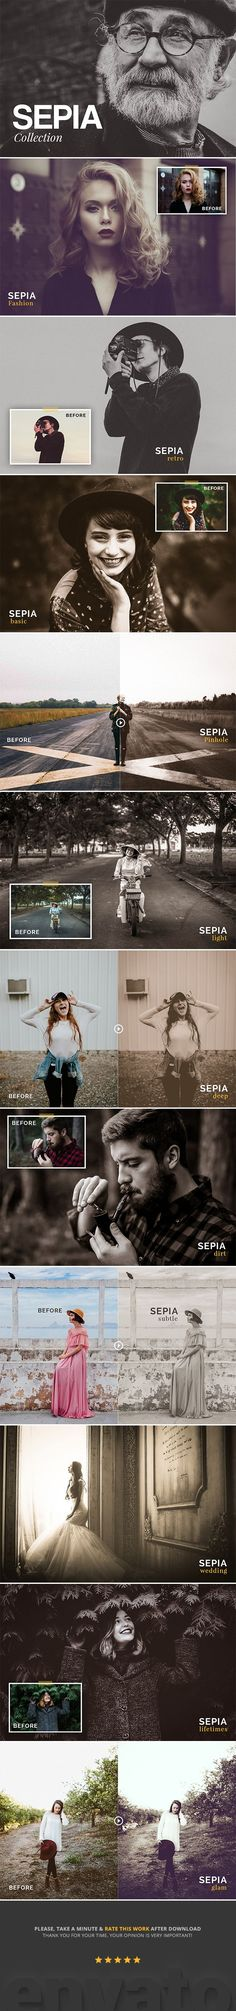 Sepia Collection Lightroom Presets - Vintage Lightroom Presets